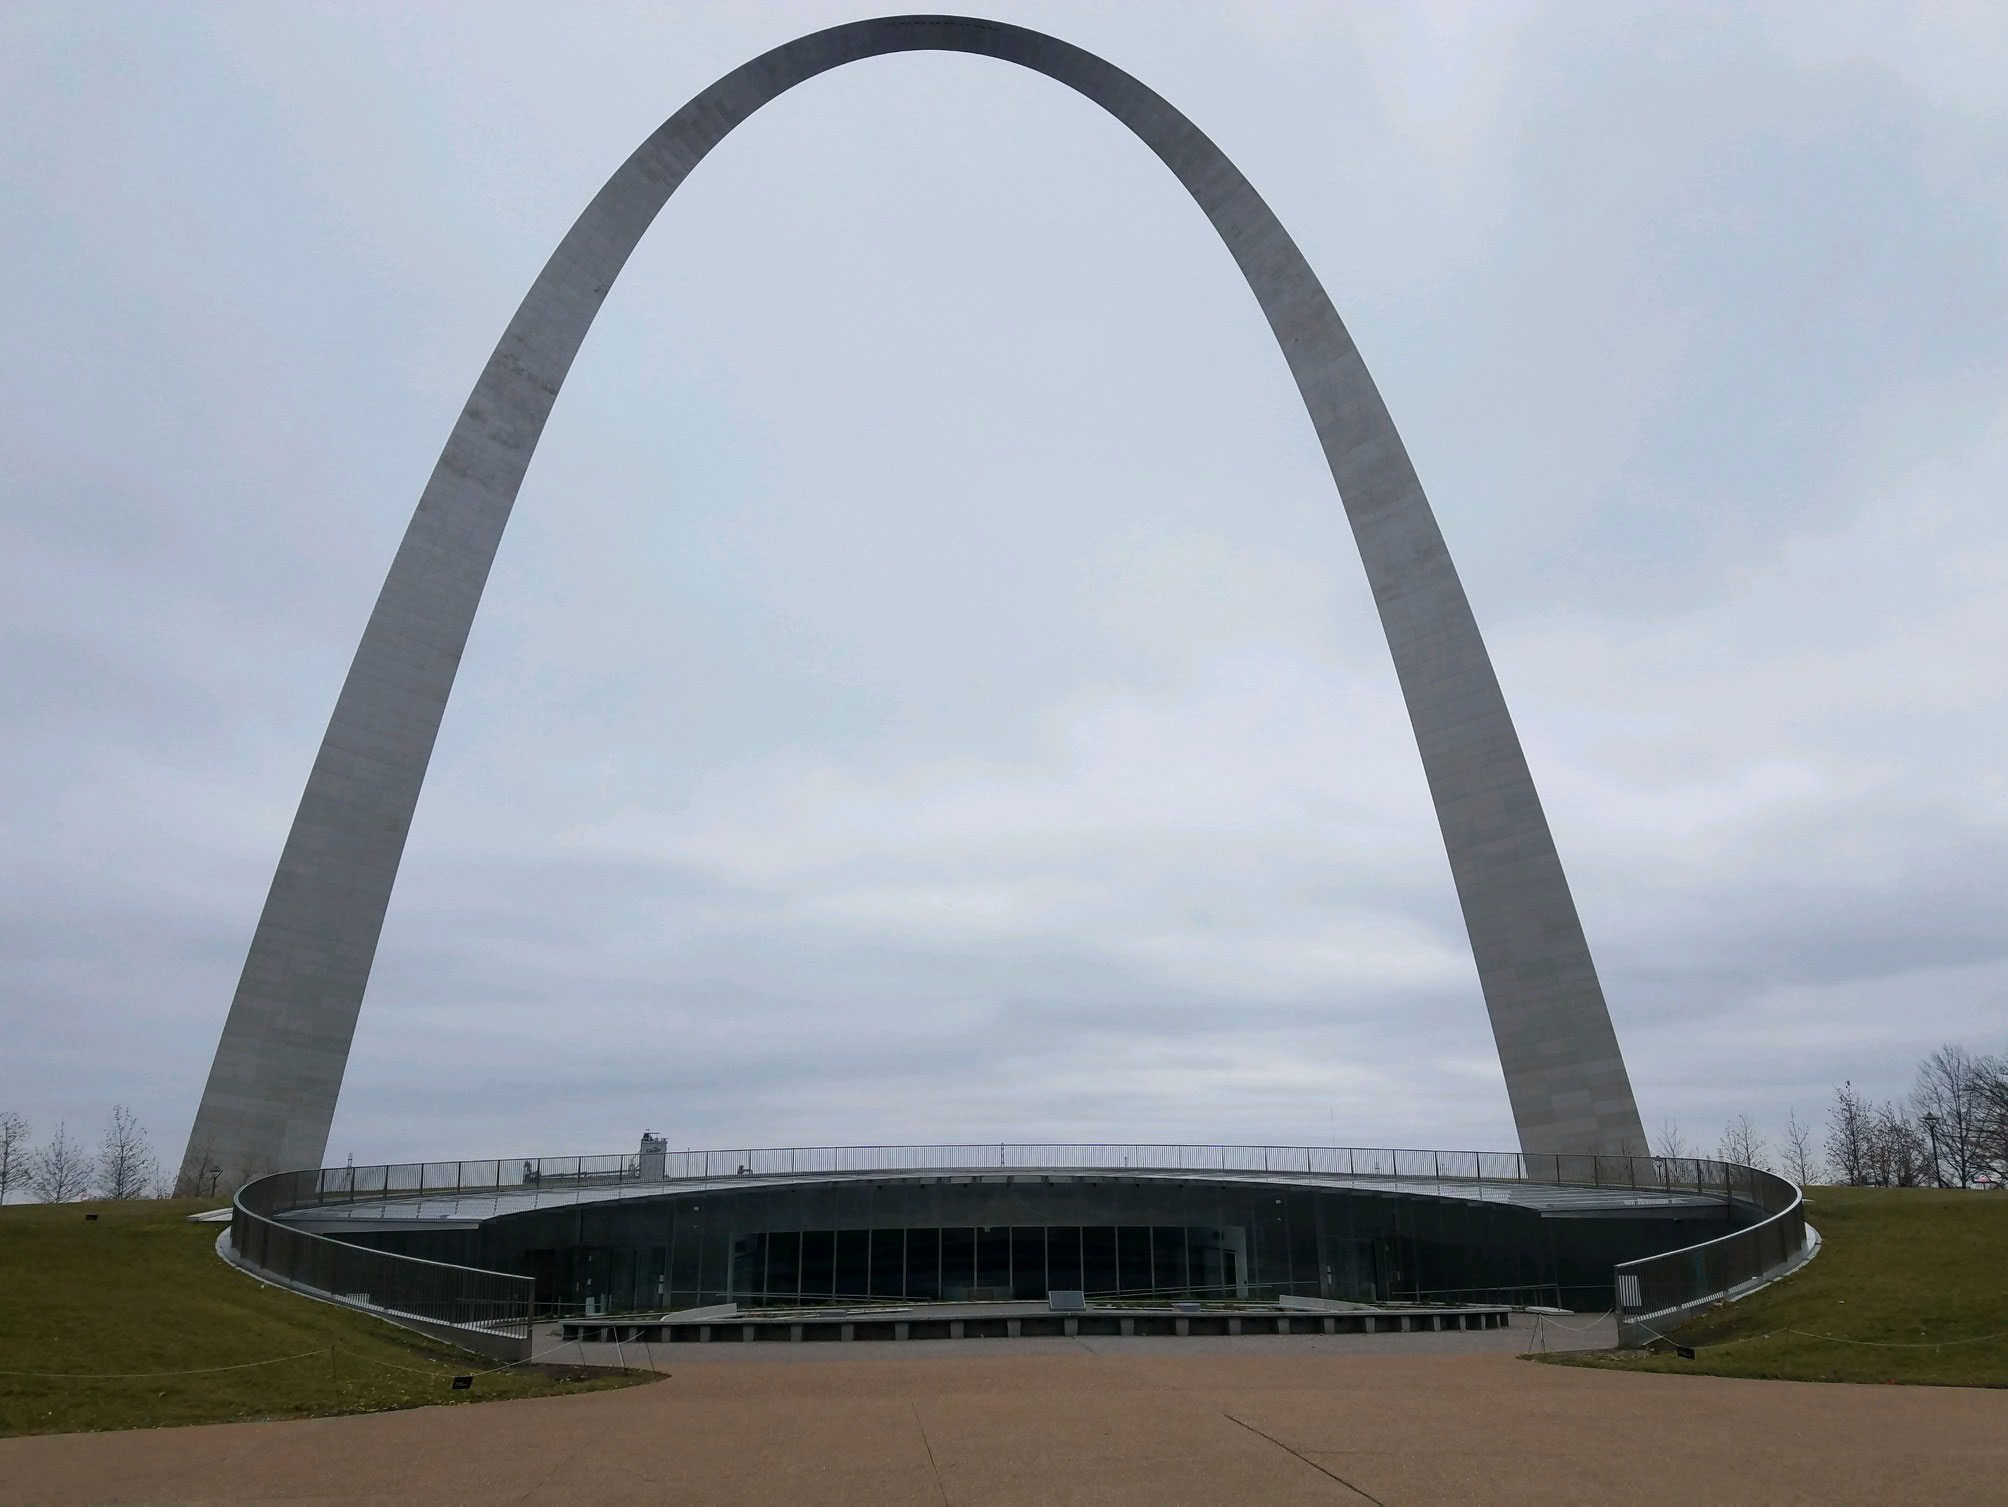 The empty visitor center beneath the Gateway Arch in Missouri in January 2019 during the partial government shutdown.